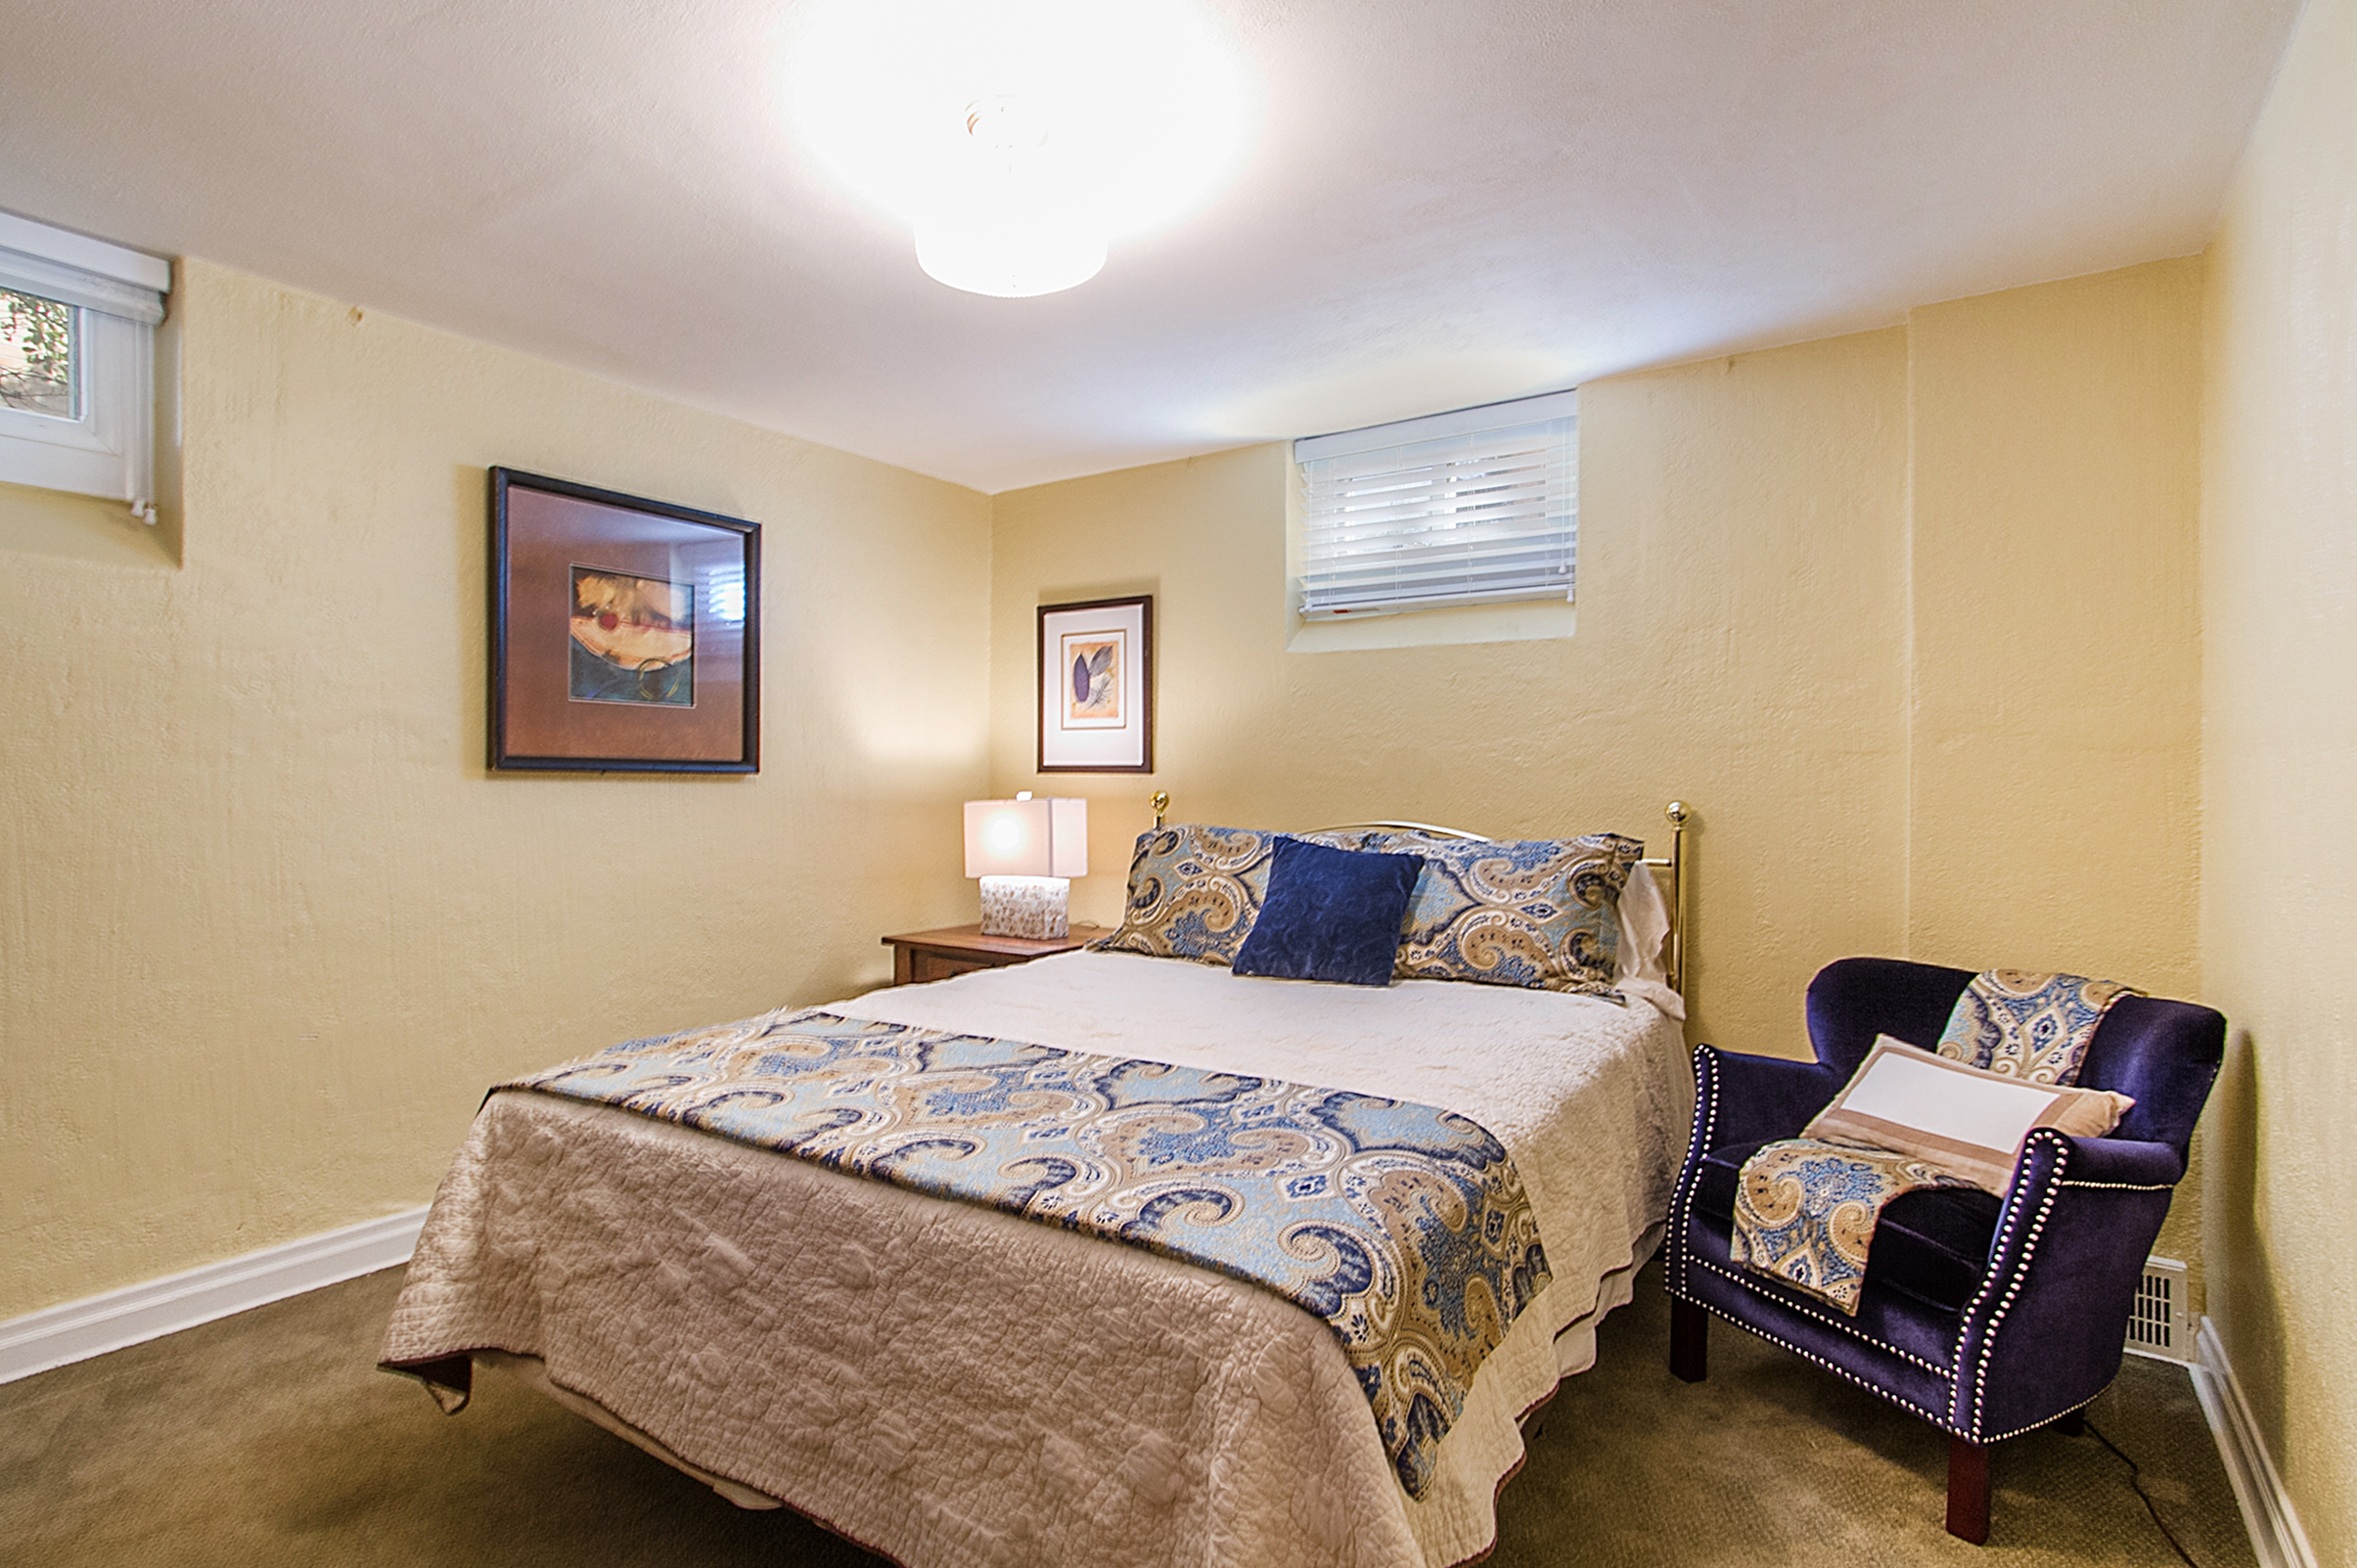 1409197_Basement-Bedroom-Three_high.jpg